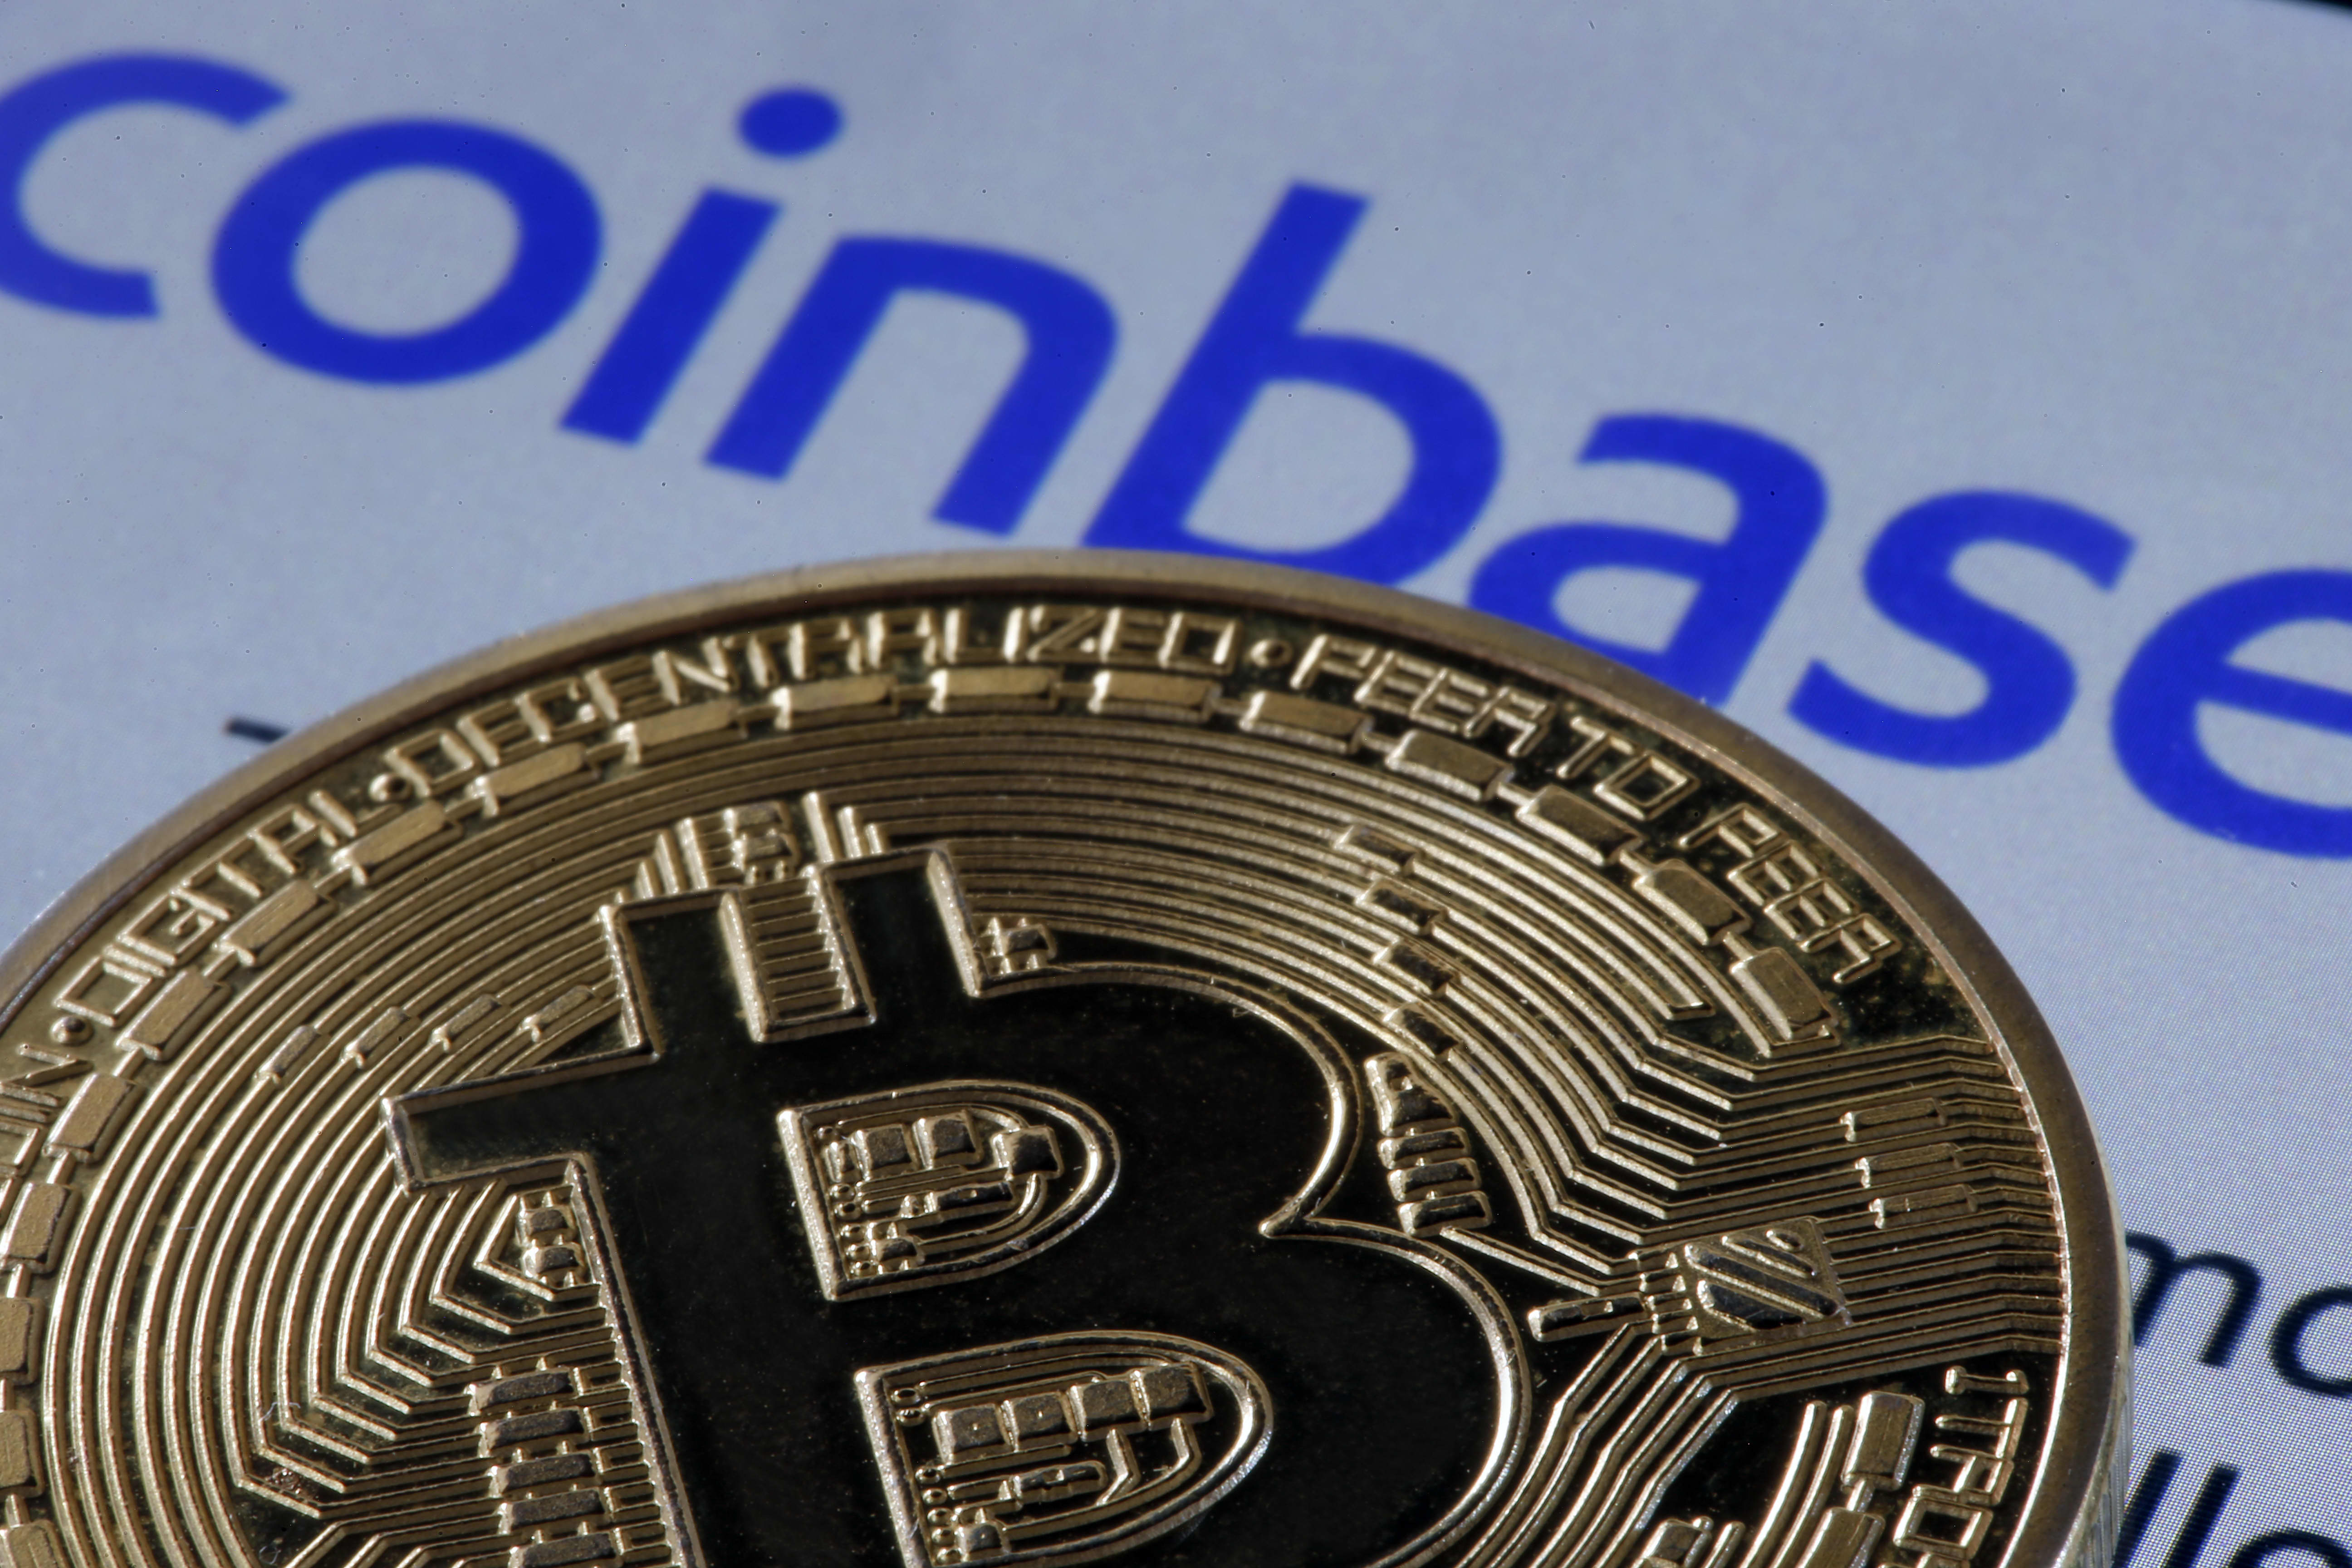 Bitcoin tumbles from recent high as cryptocurrencies take weekend hit